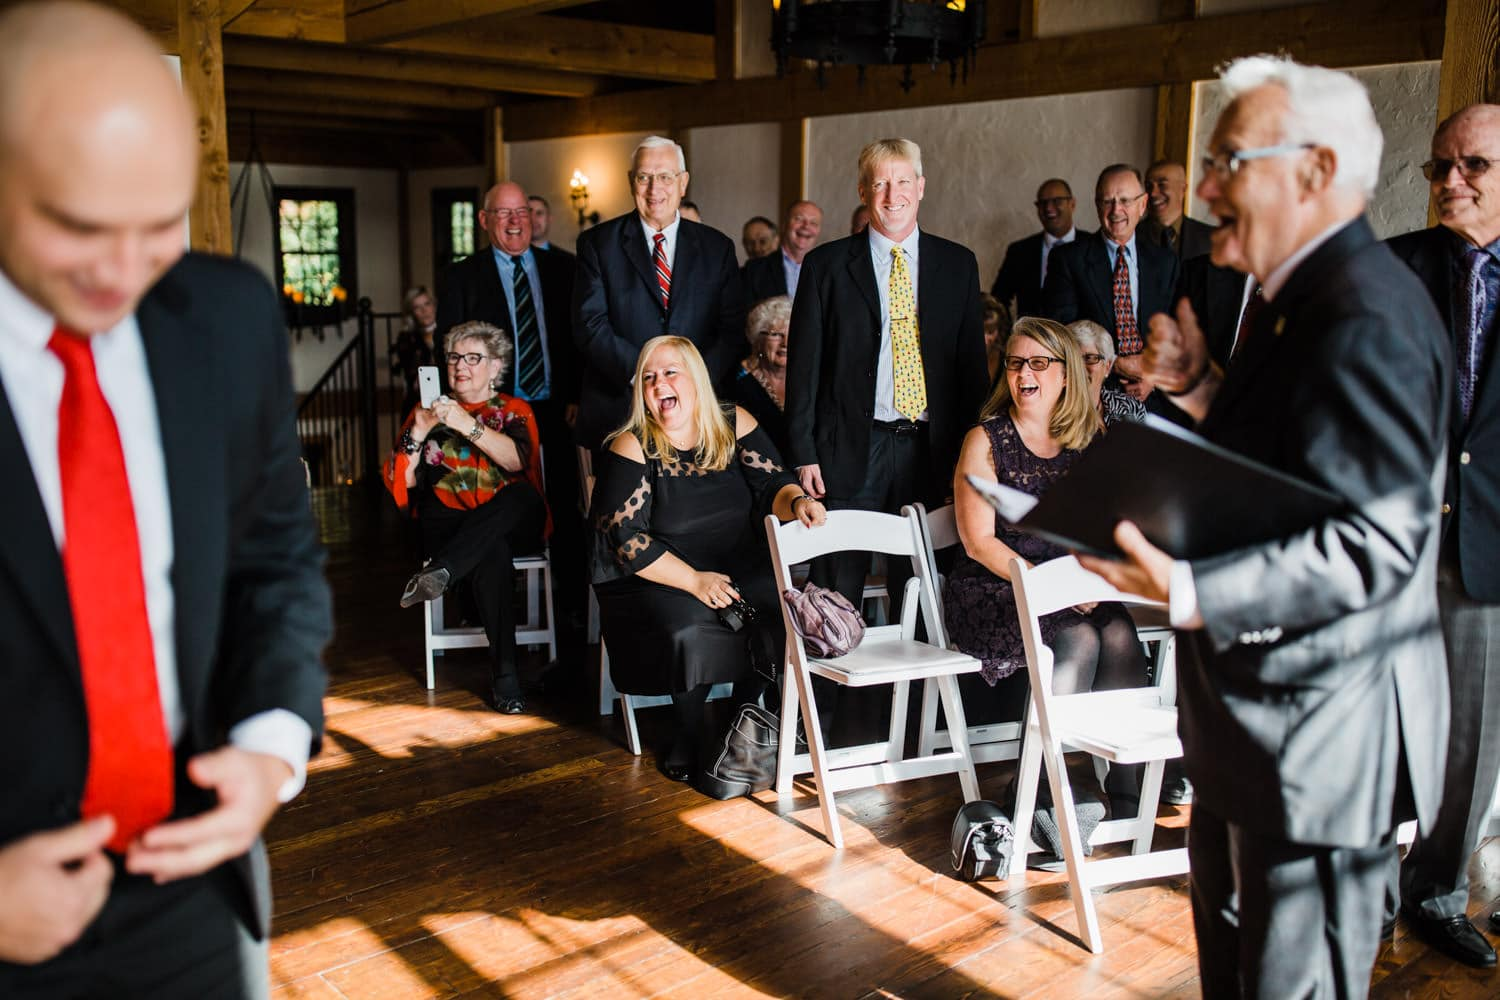 guests laugh during wedding ceremony